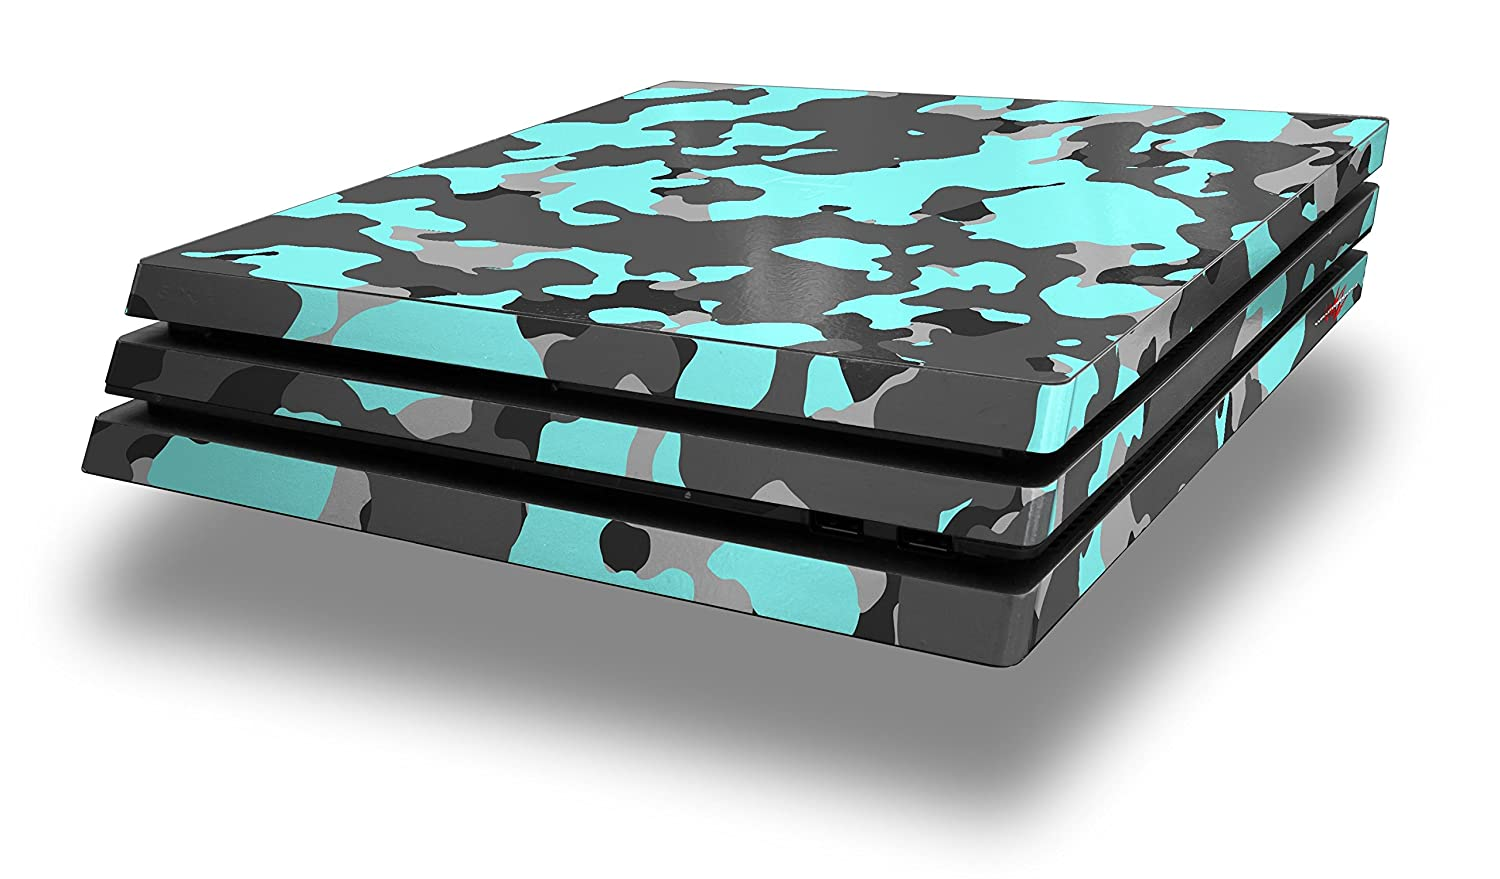 WraptorSkinz PS4 Pro Skin WraptorCamo Old School Camouflage Camo Neon Teal - Decal Style Skin Wrap fits Sony PlayStation 4 Pro Console